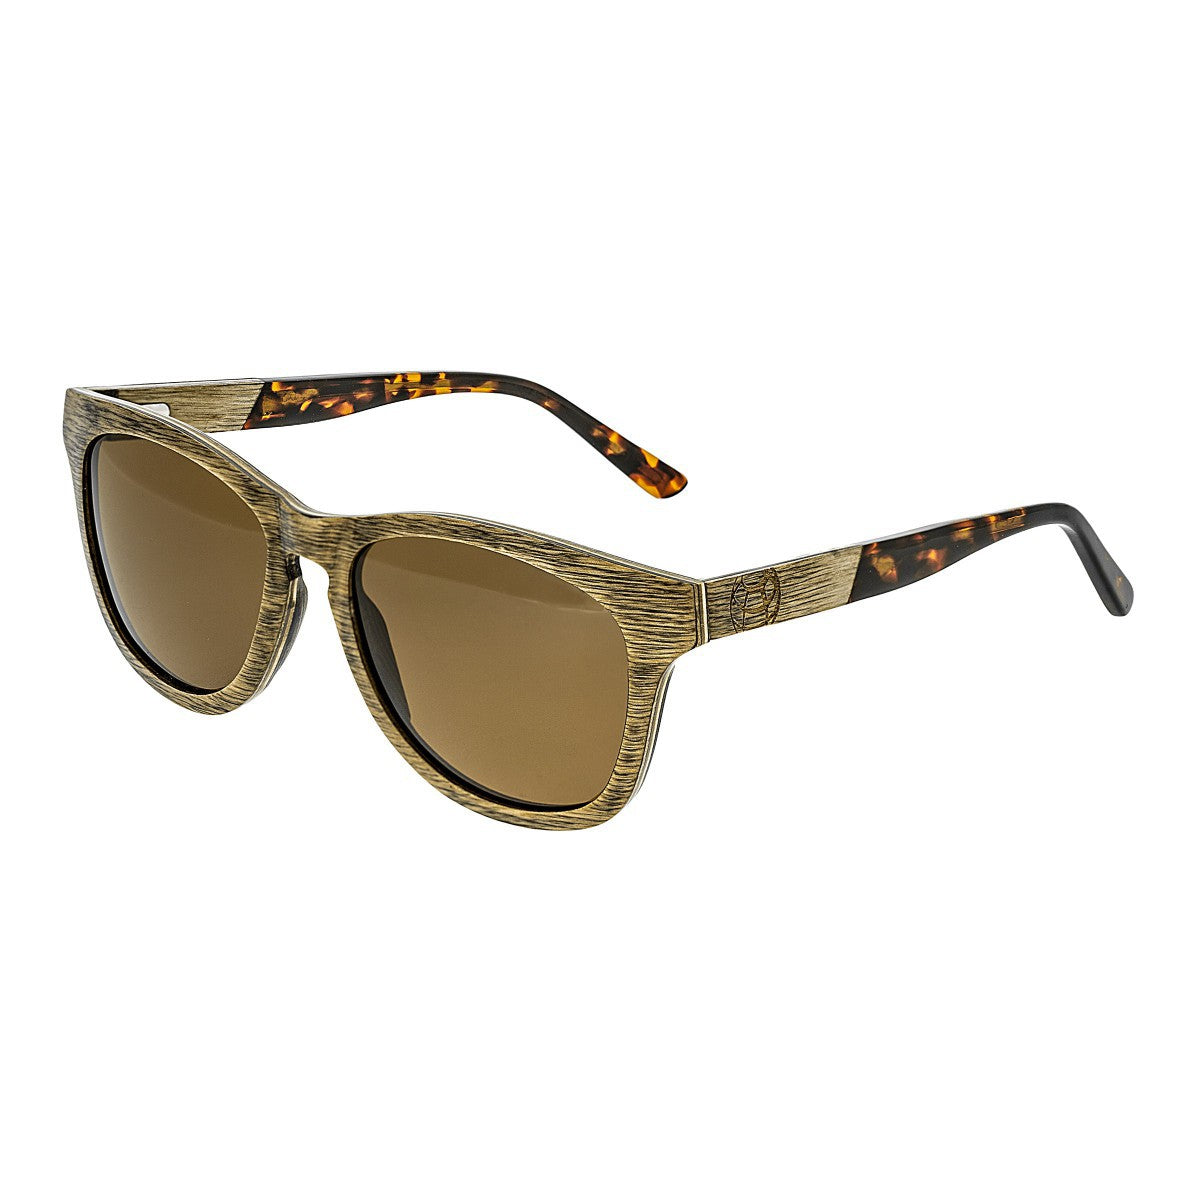 Earth Wood Cove Polarized Sunglasses - GENT.ONE